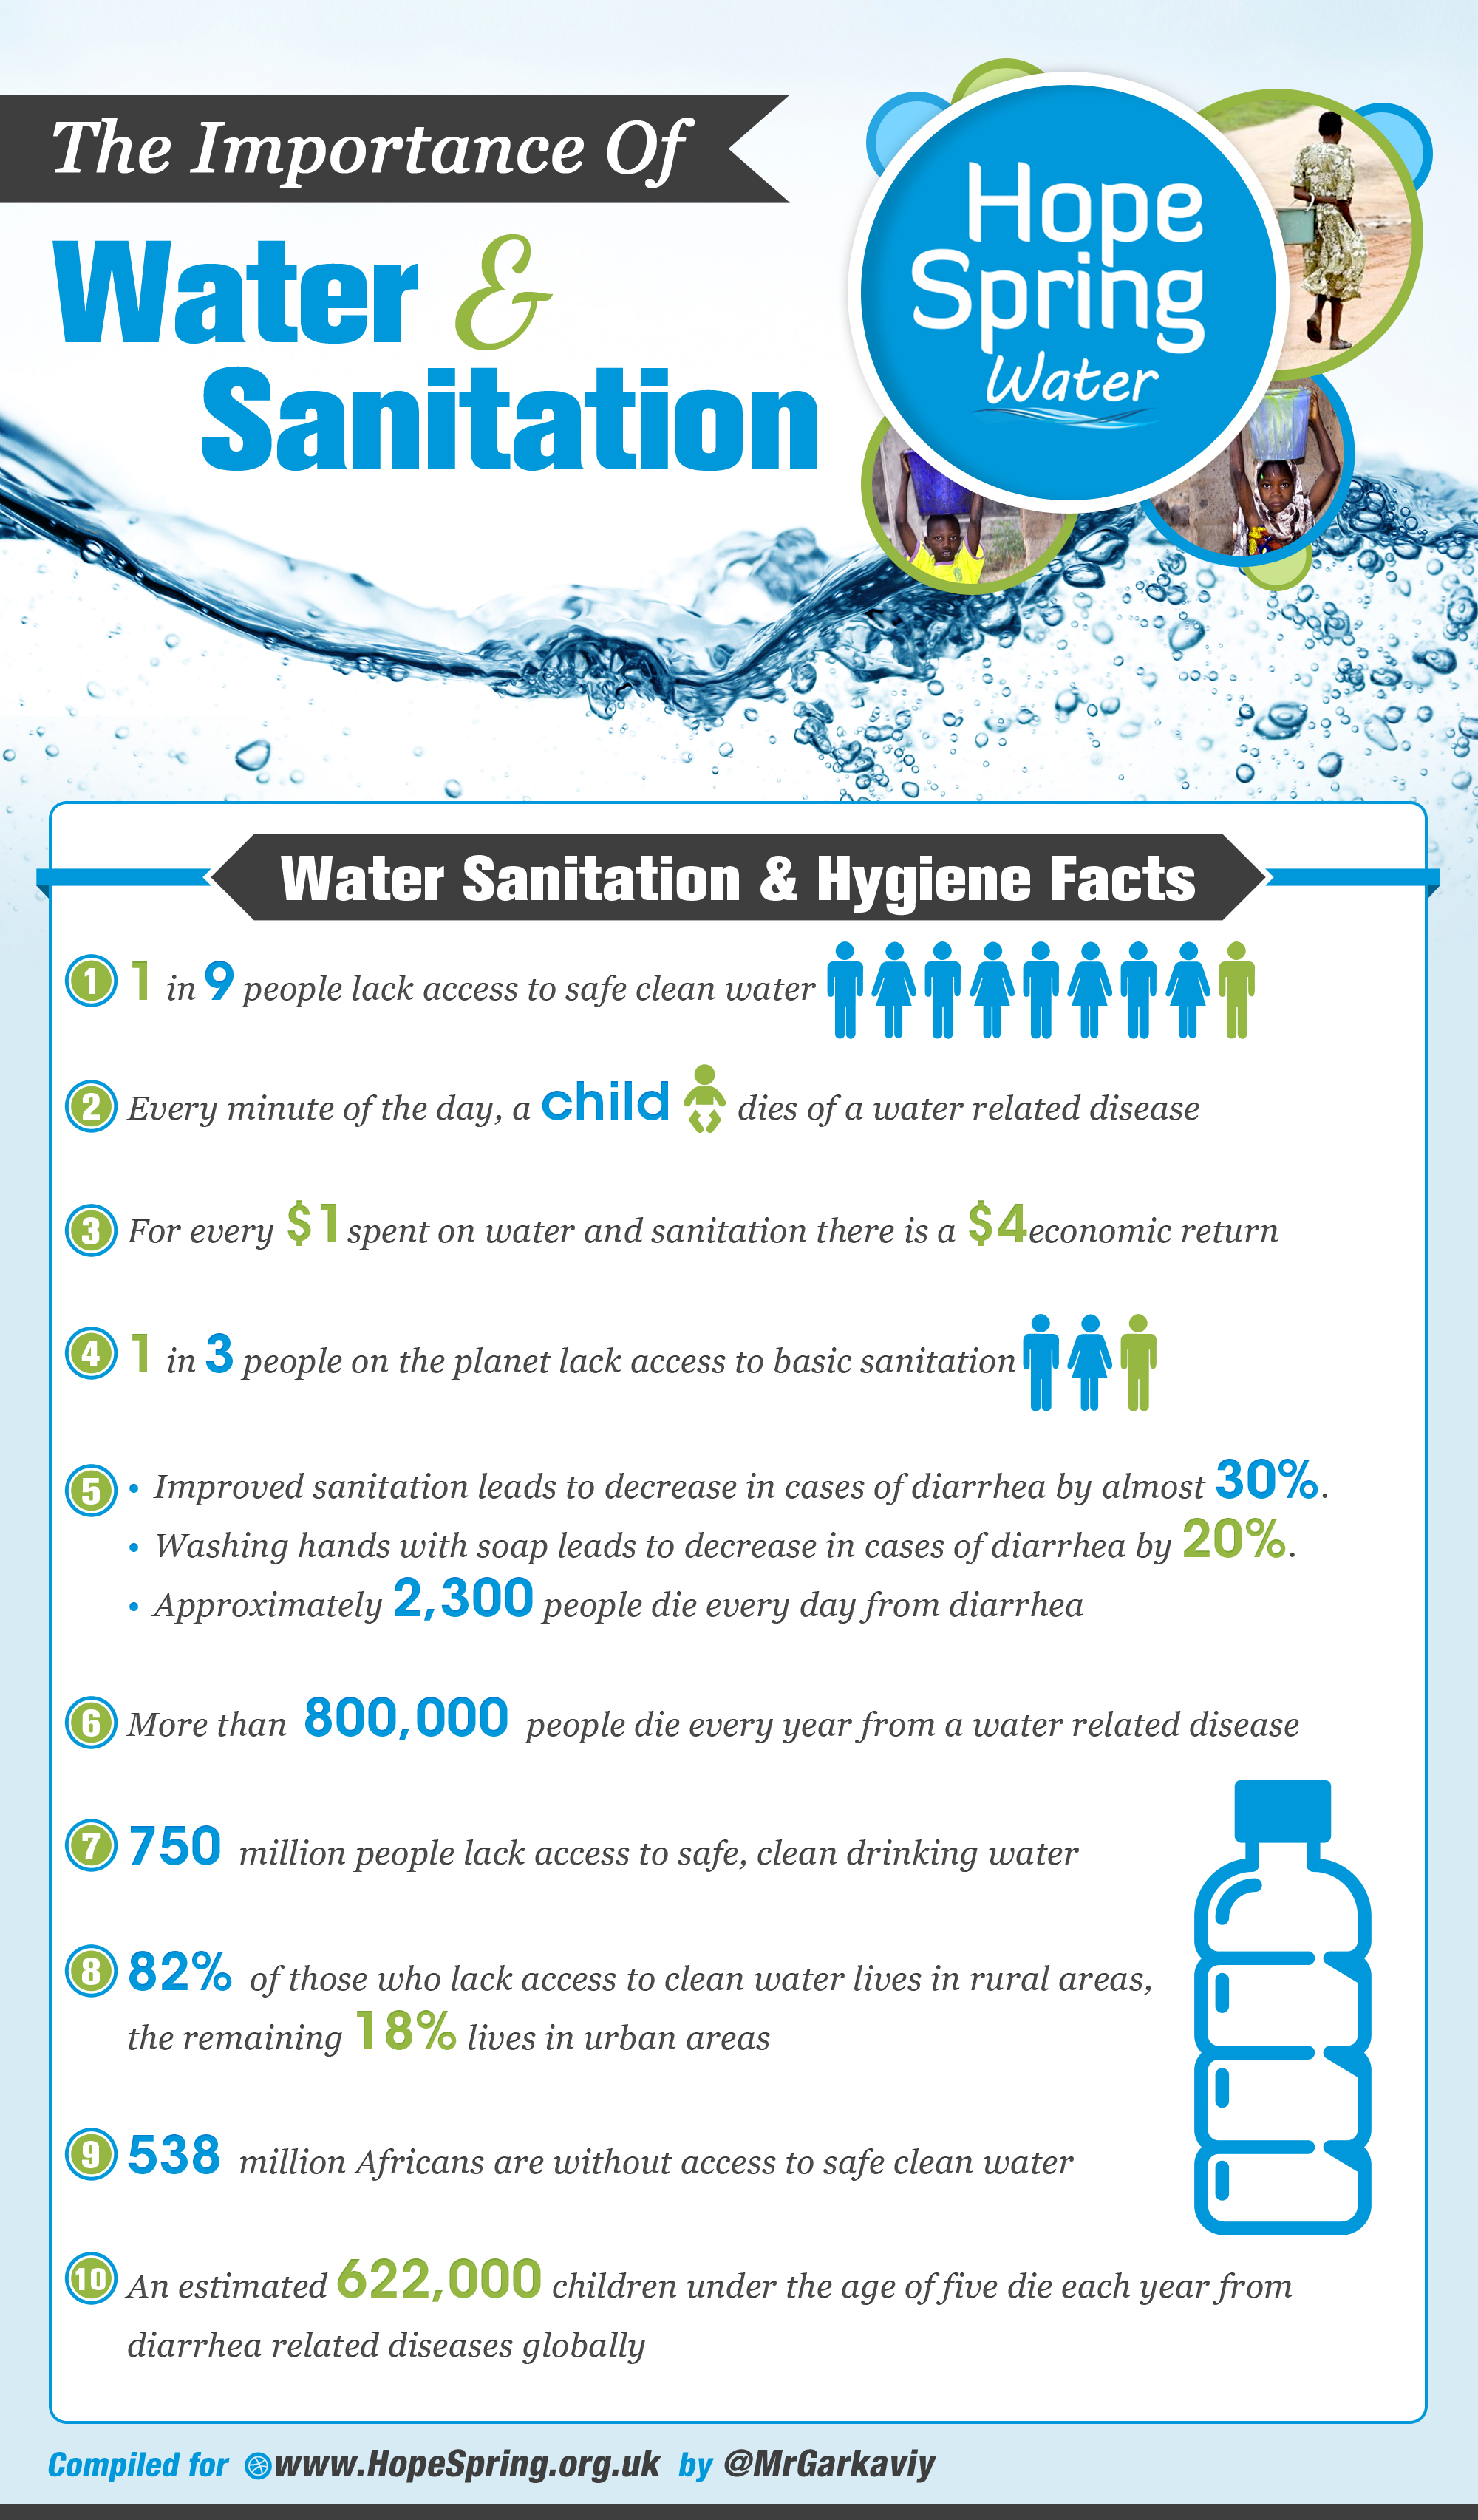 The_Importance_Of_Water_And_Sanitation